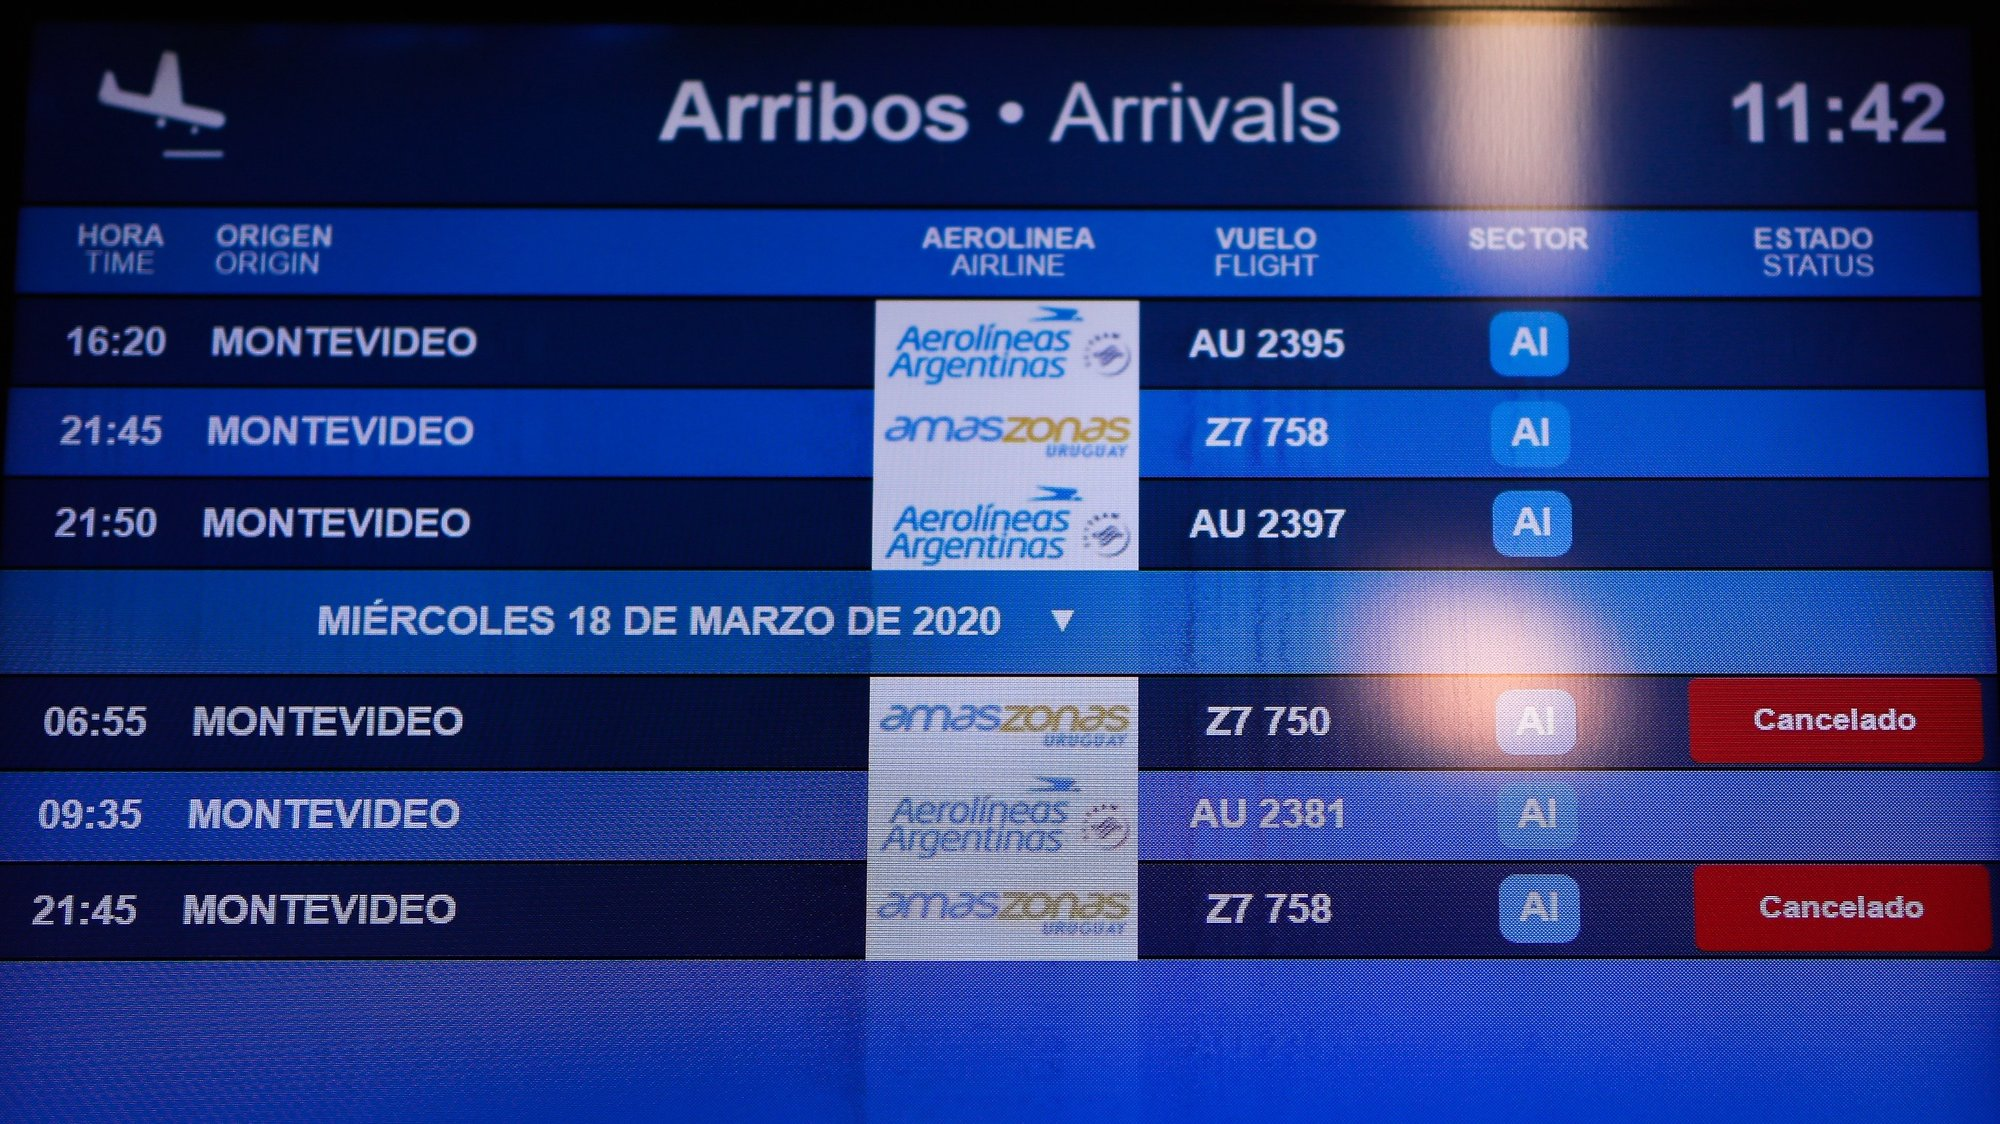 epa08301659 View of a screen with canceled flights at Jorge Newbery Airport, in Buenos Aires, Argentina, 17 March 2020. The Argentine Government announced on 15 March the closure of the borders for at least two weeks with minor exceptions. It also suspended flights from the US and Europe starting 16 March in an effort to fight the spread of the COVID-19 coronavirus  EPA/Juan Ignacio Roncoroni